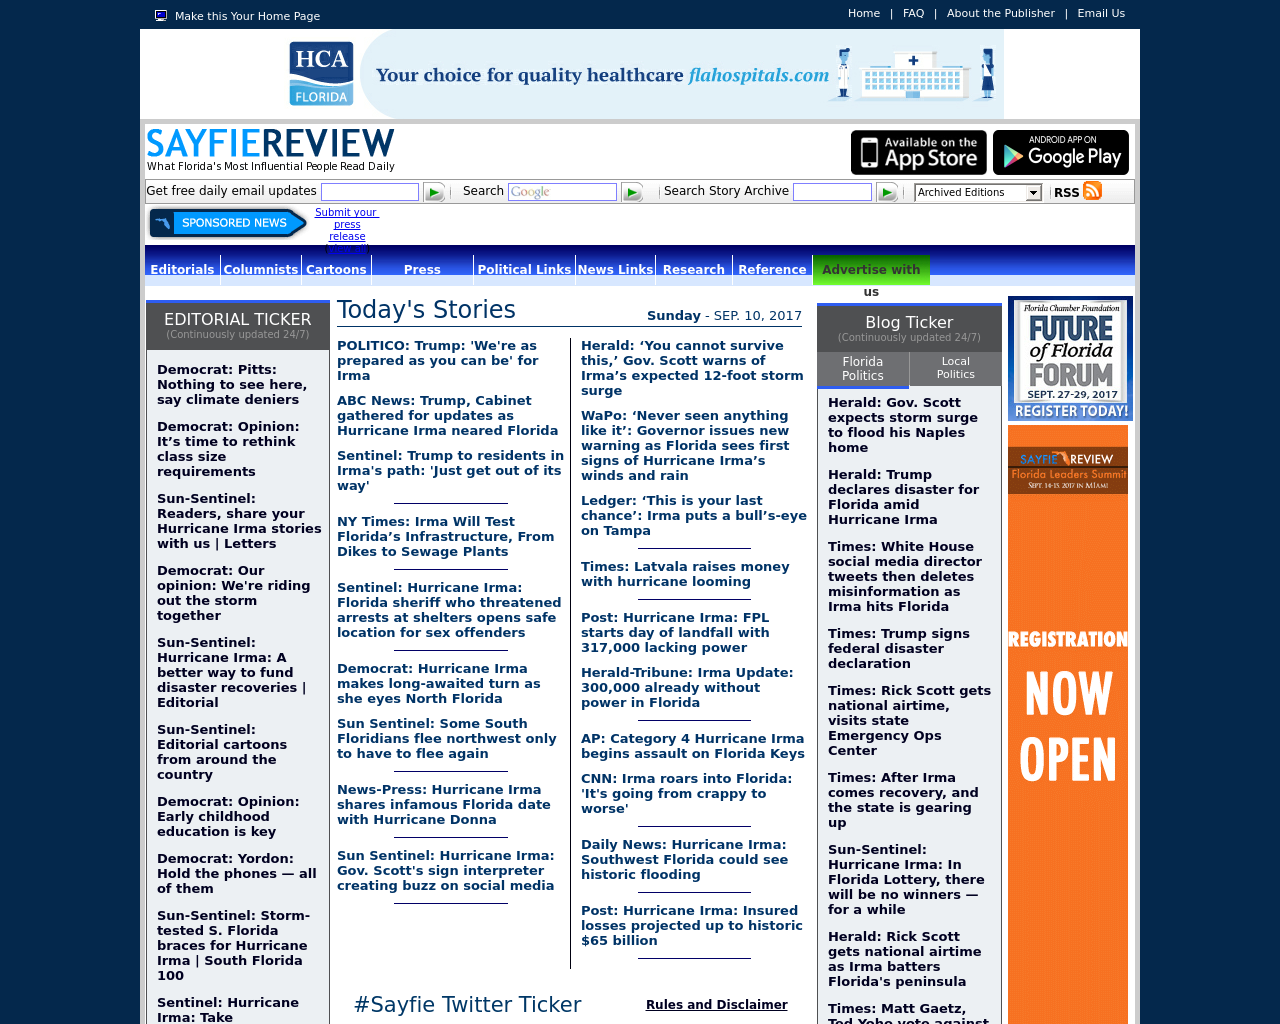 Sayfie-Review-Advertising-Reviews-Pricing